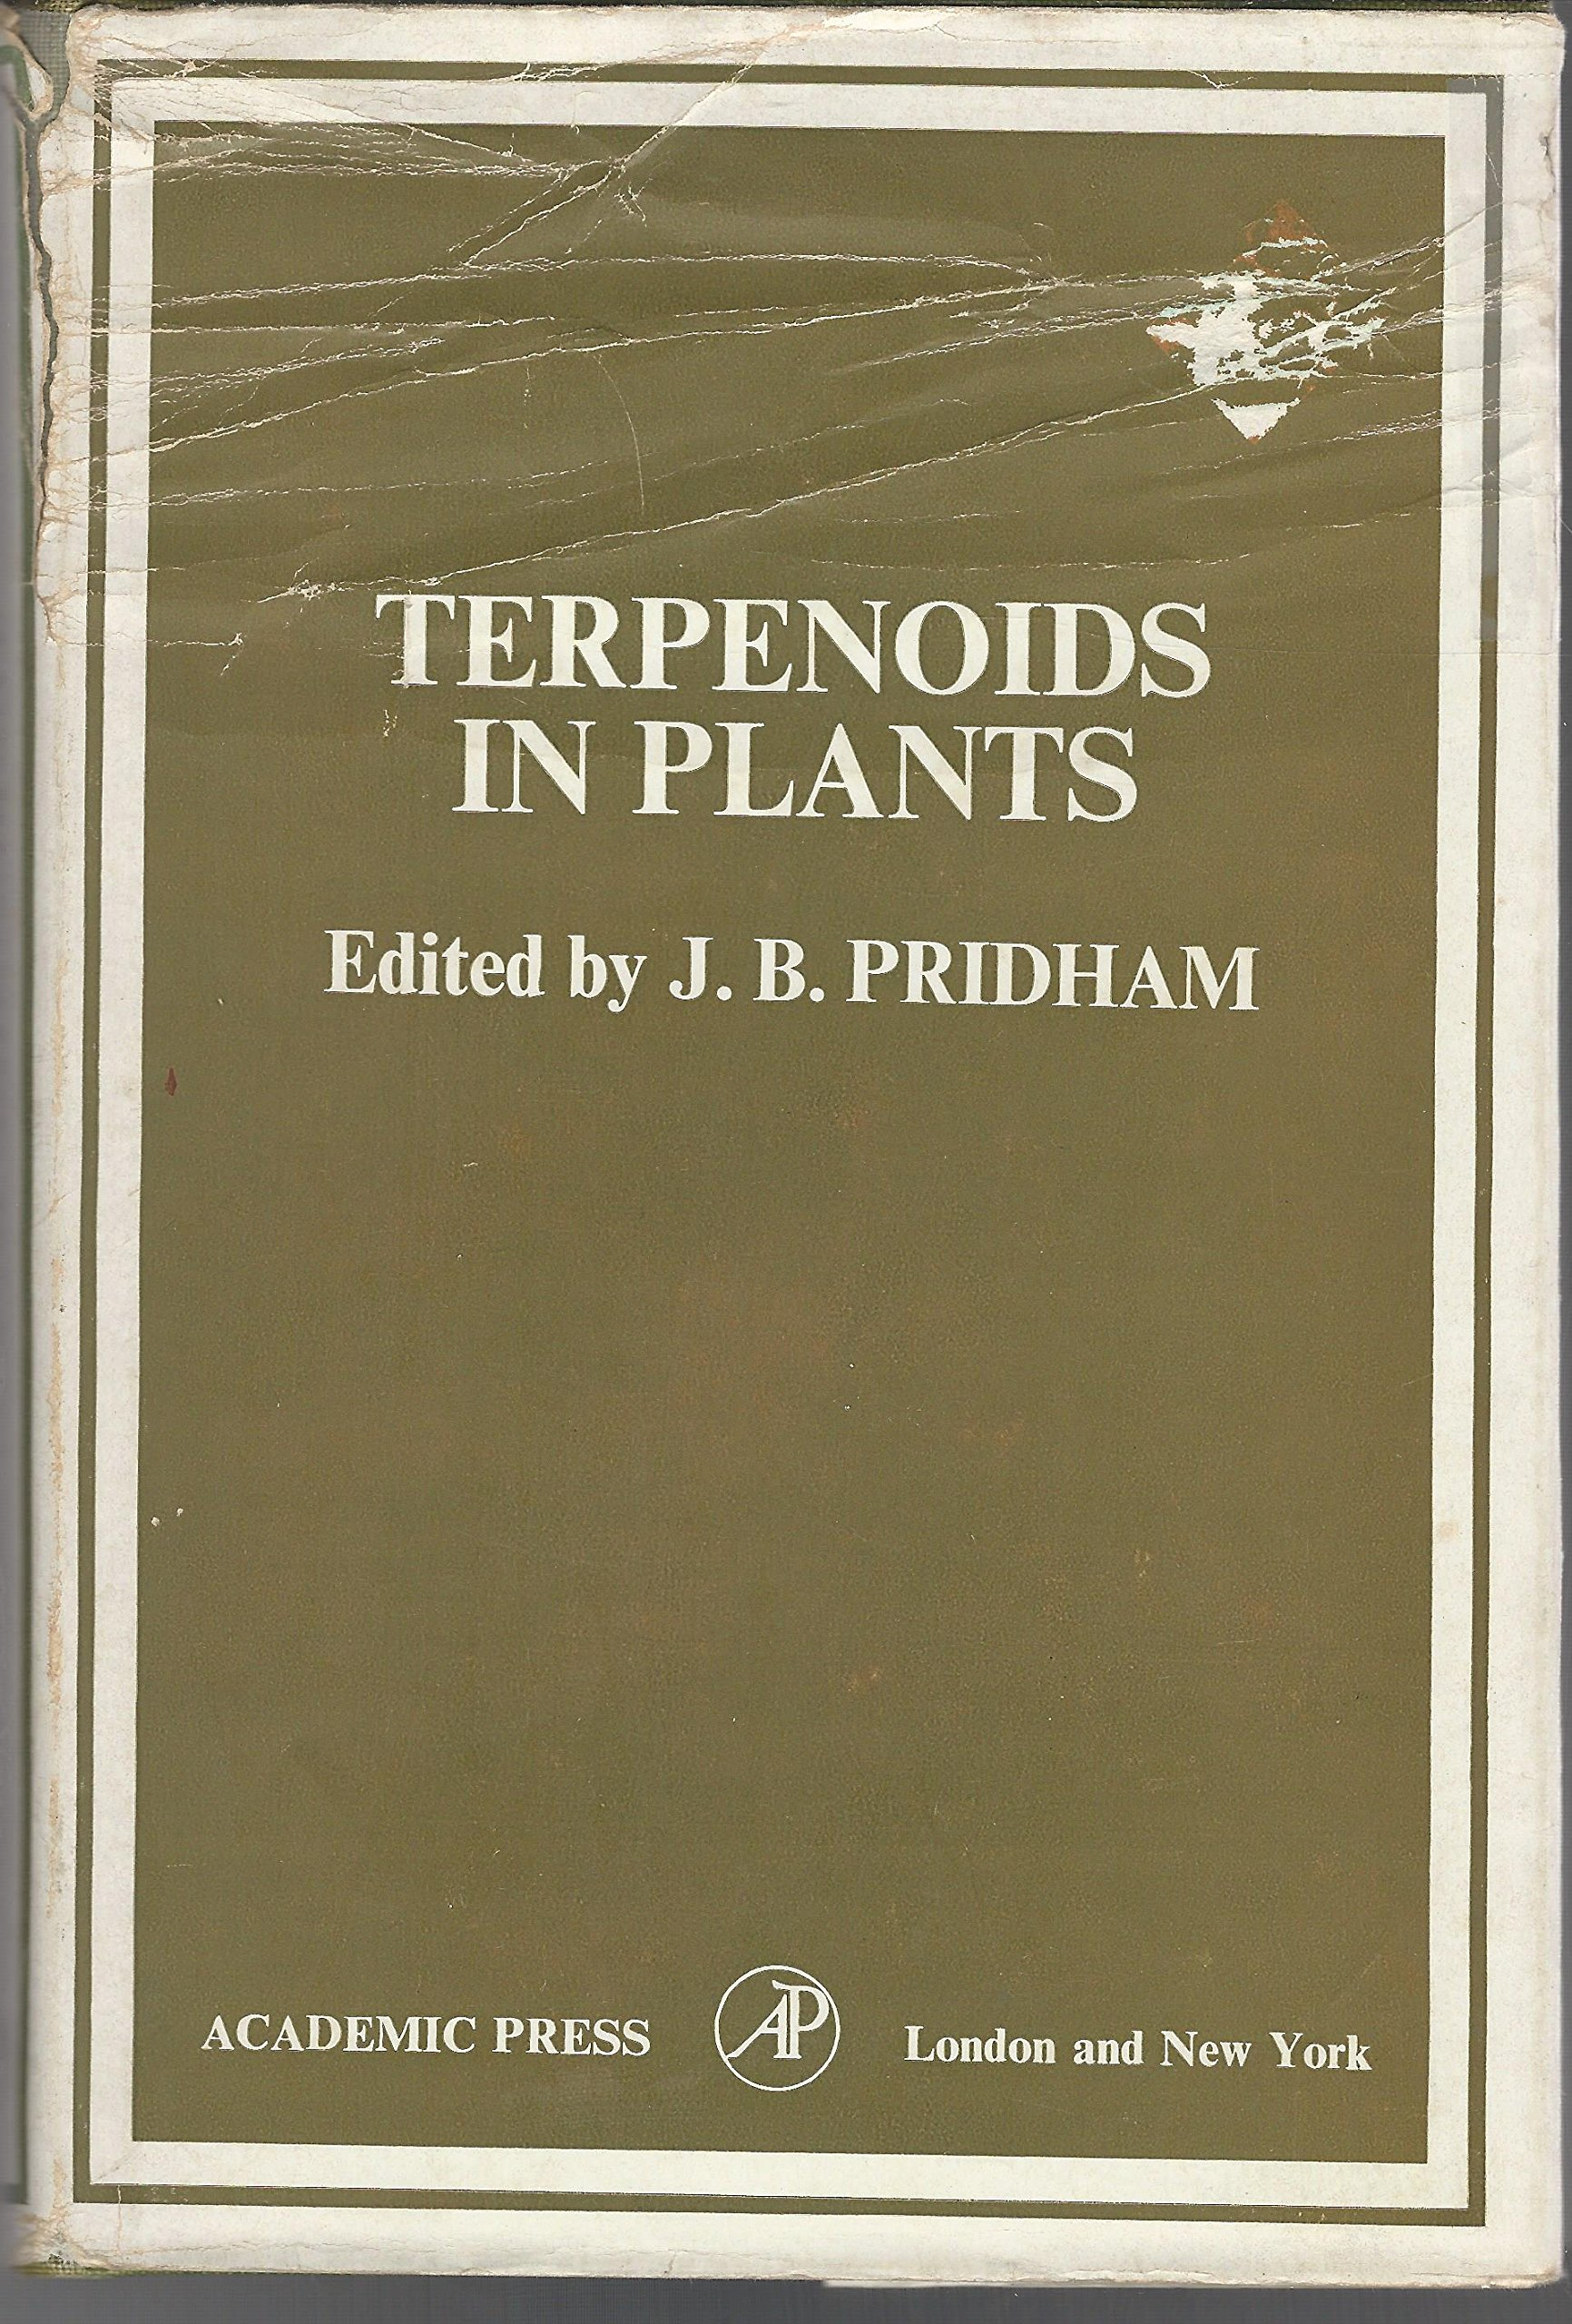 Terpenoids in Plants. Proceedings of the Phytochemical Group Symposium Aberystwyth, April 1966., Pridham, J.B. (Editor)